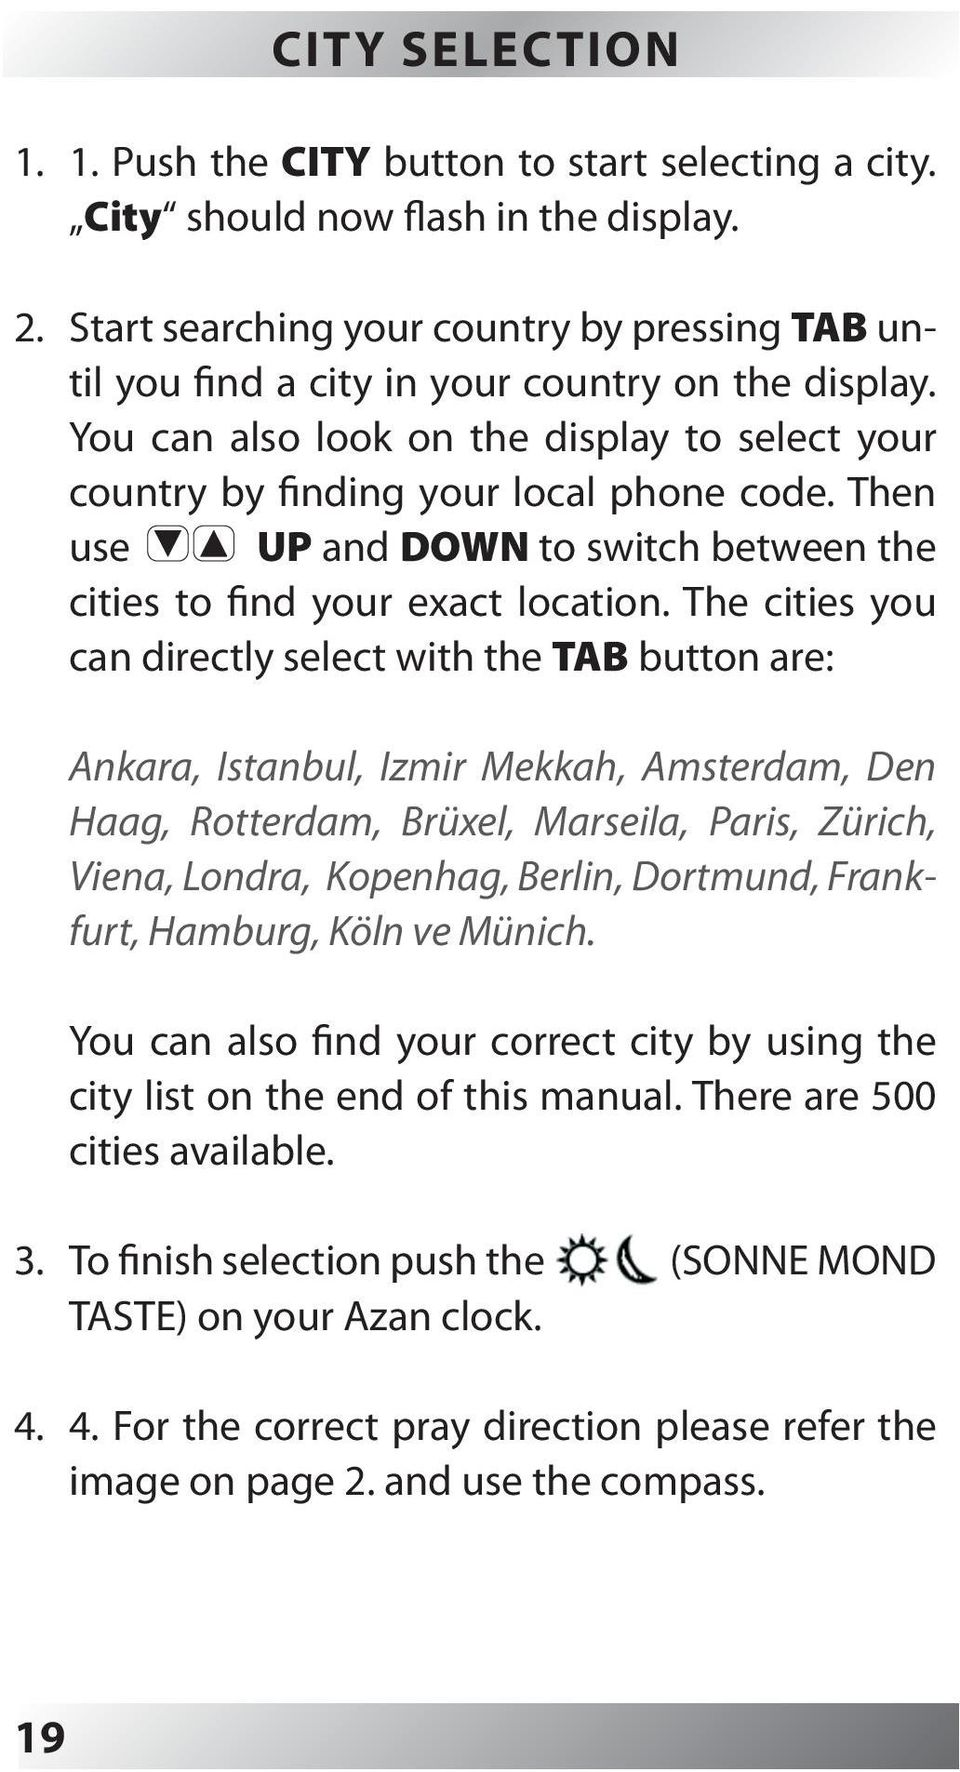 Then use UP and DOWN to switch between the cities to find your exact location.